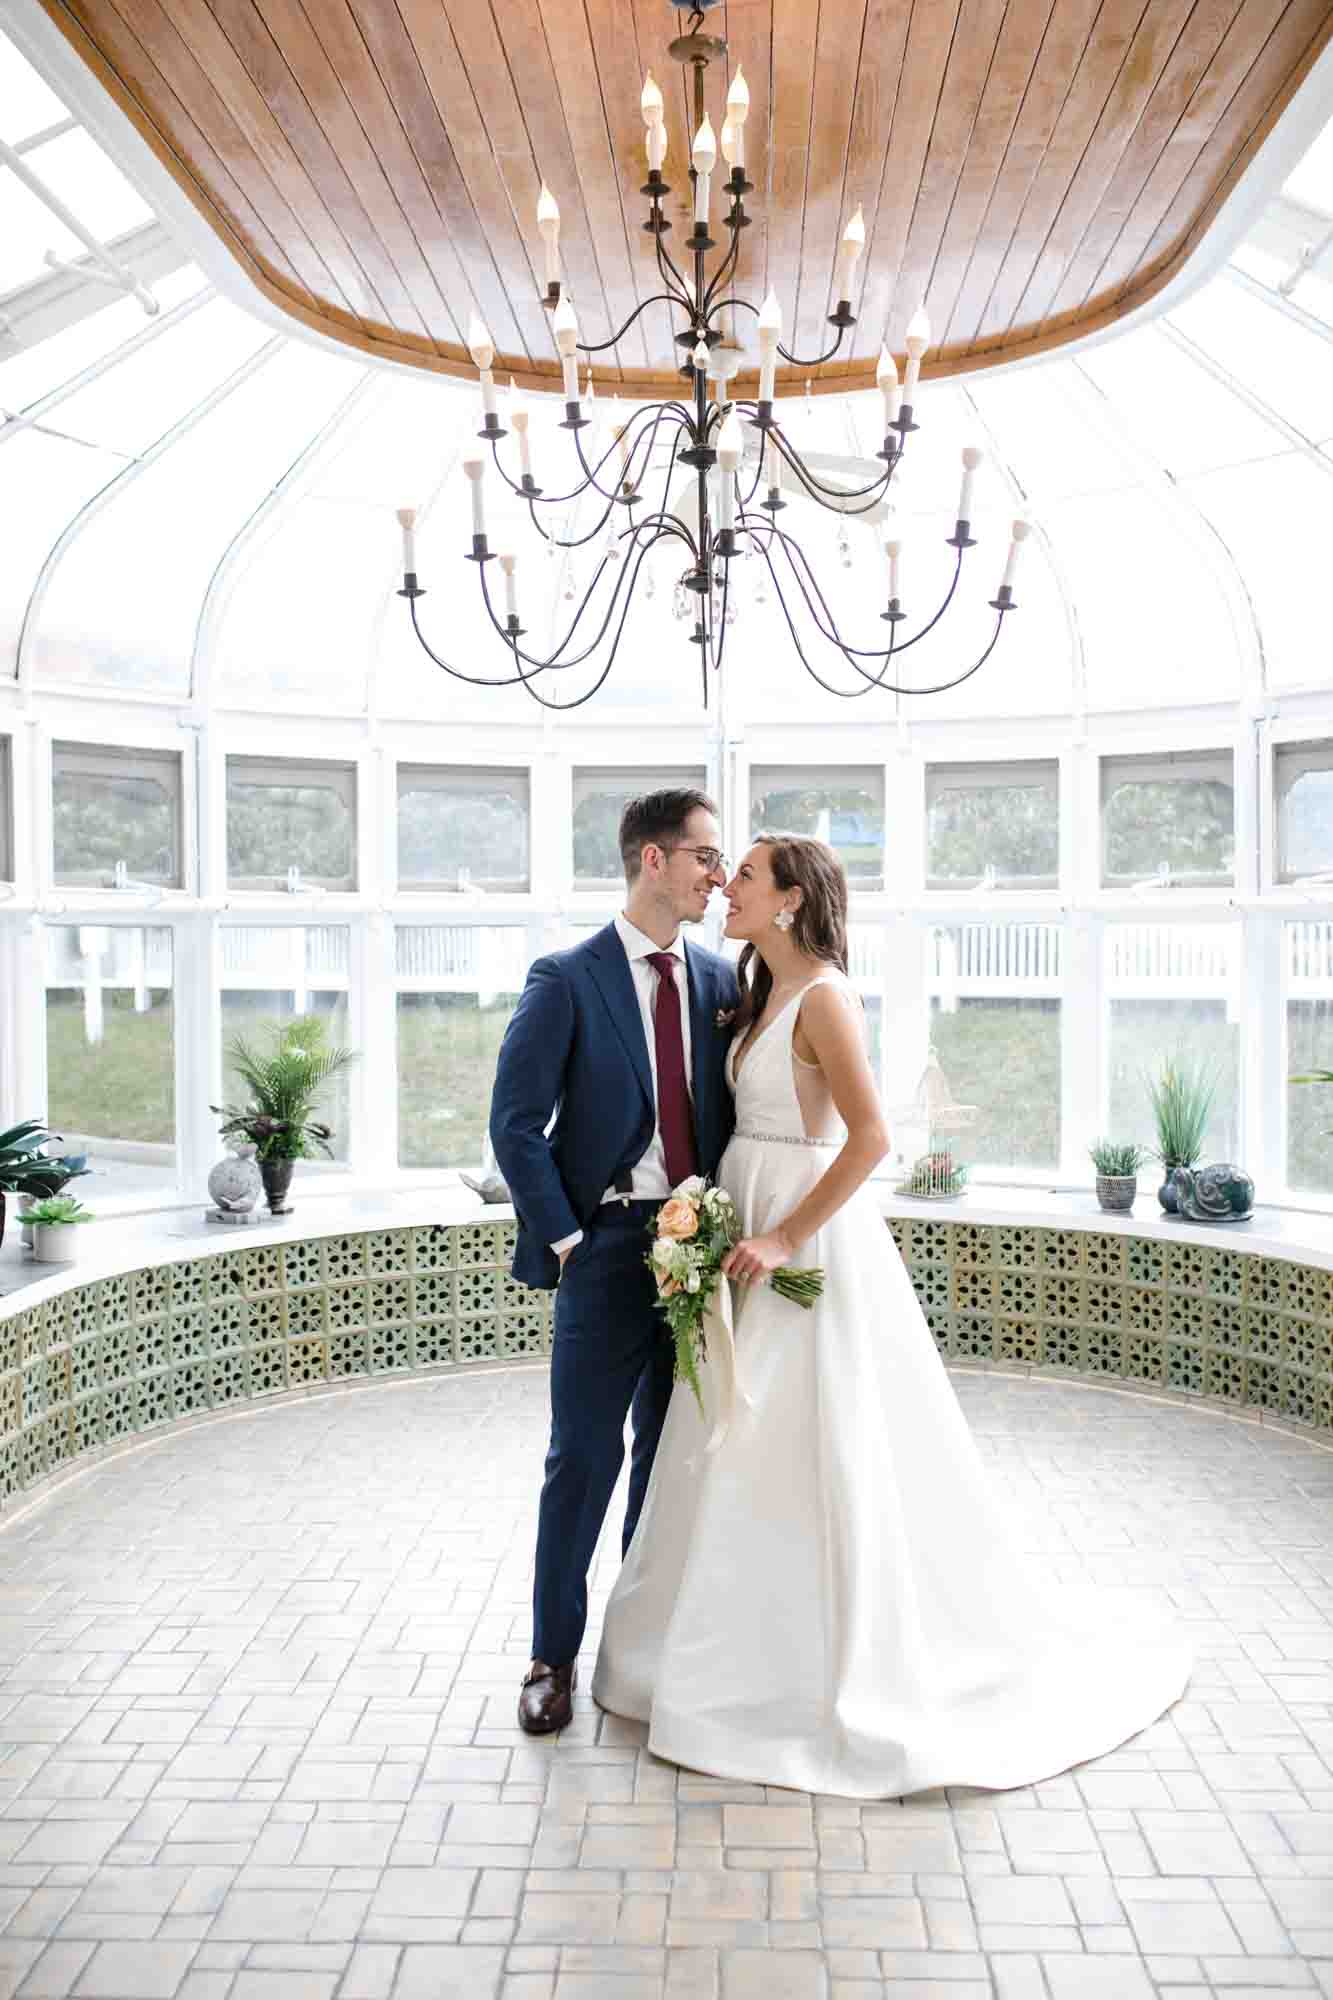 bride and groom standing close in glass conservatory